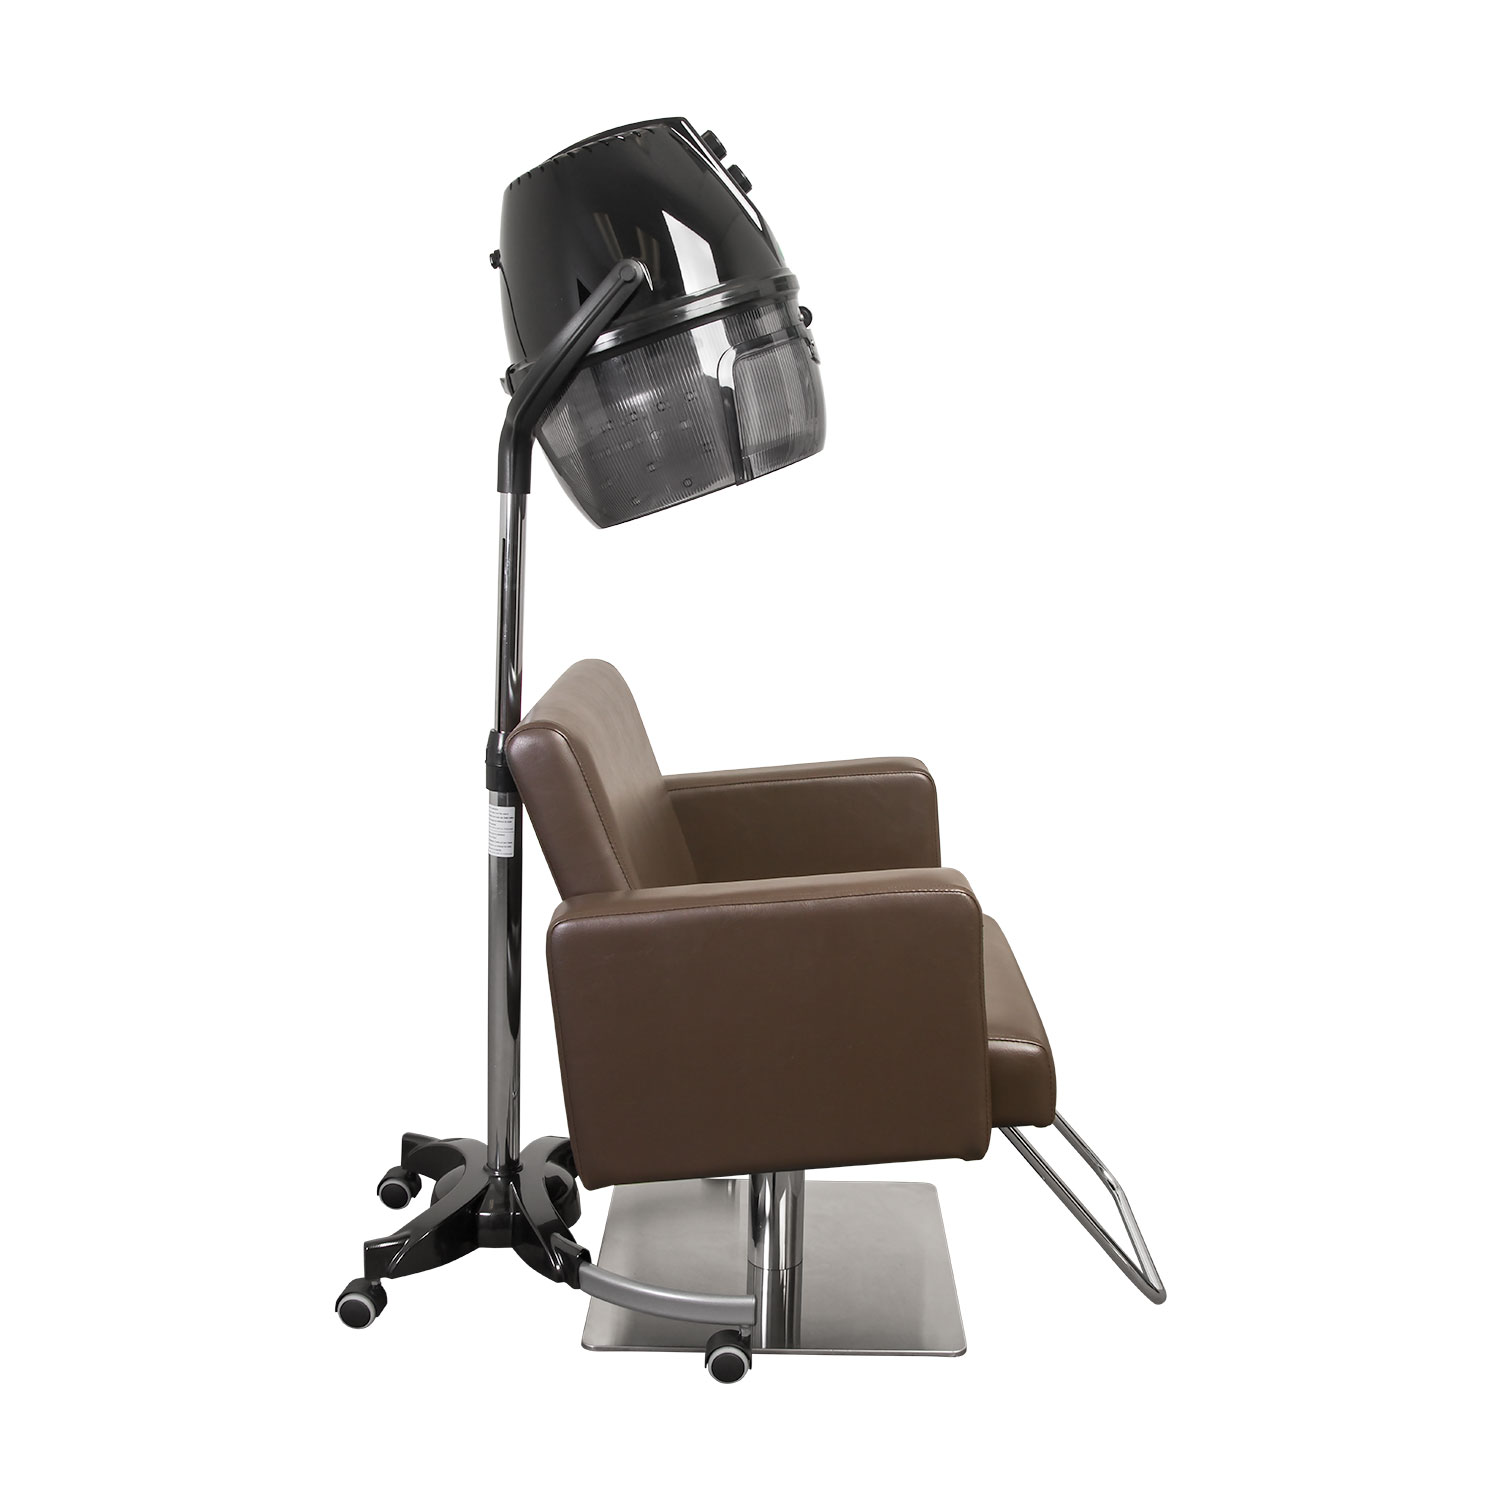 Black Brio Hooded Salon Hair Dryer On Wheels alternative product image 4